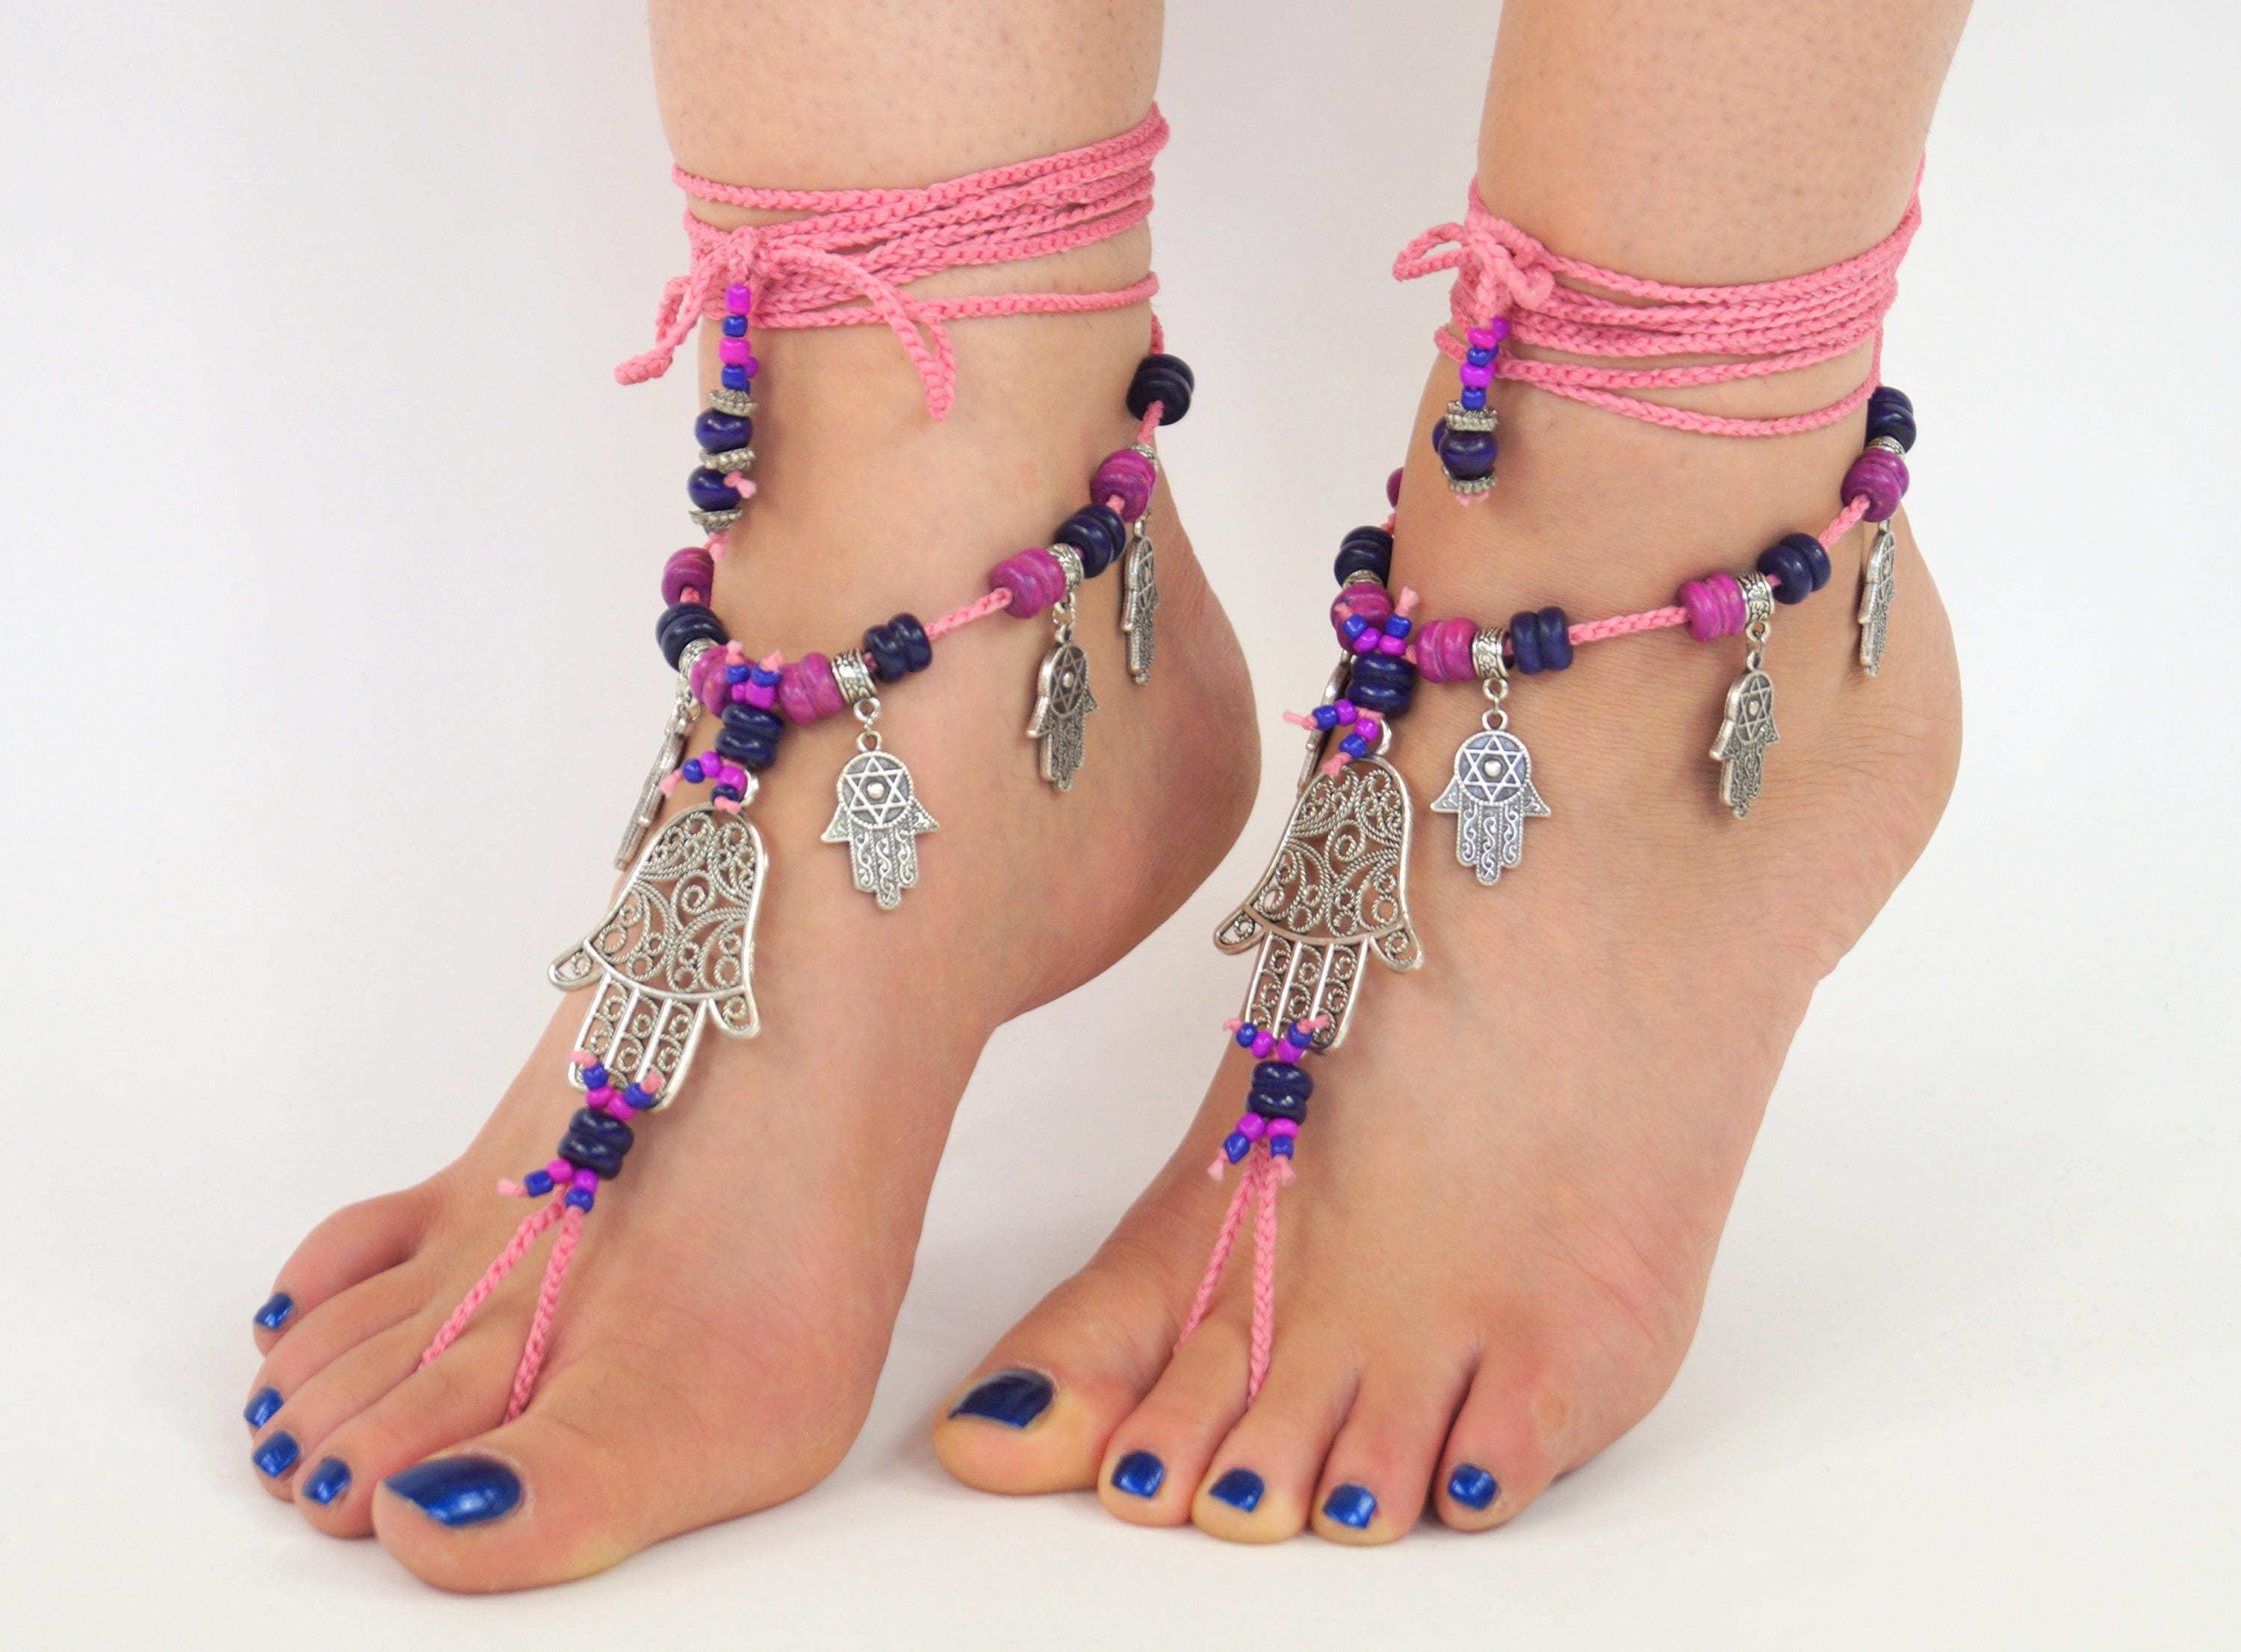 jewelry shoes sandals bridal beach yoga pool lace bellydance nude steampunk foot anklet usd black sexy media barefoot